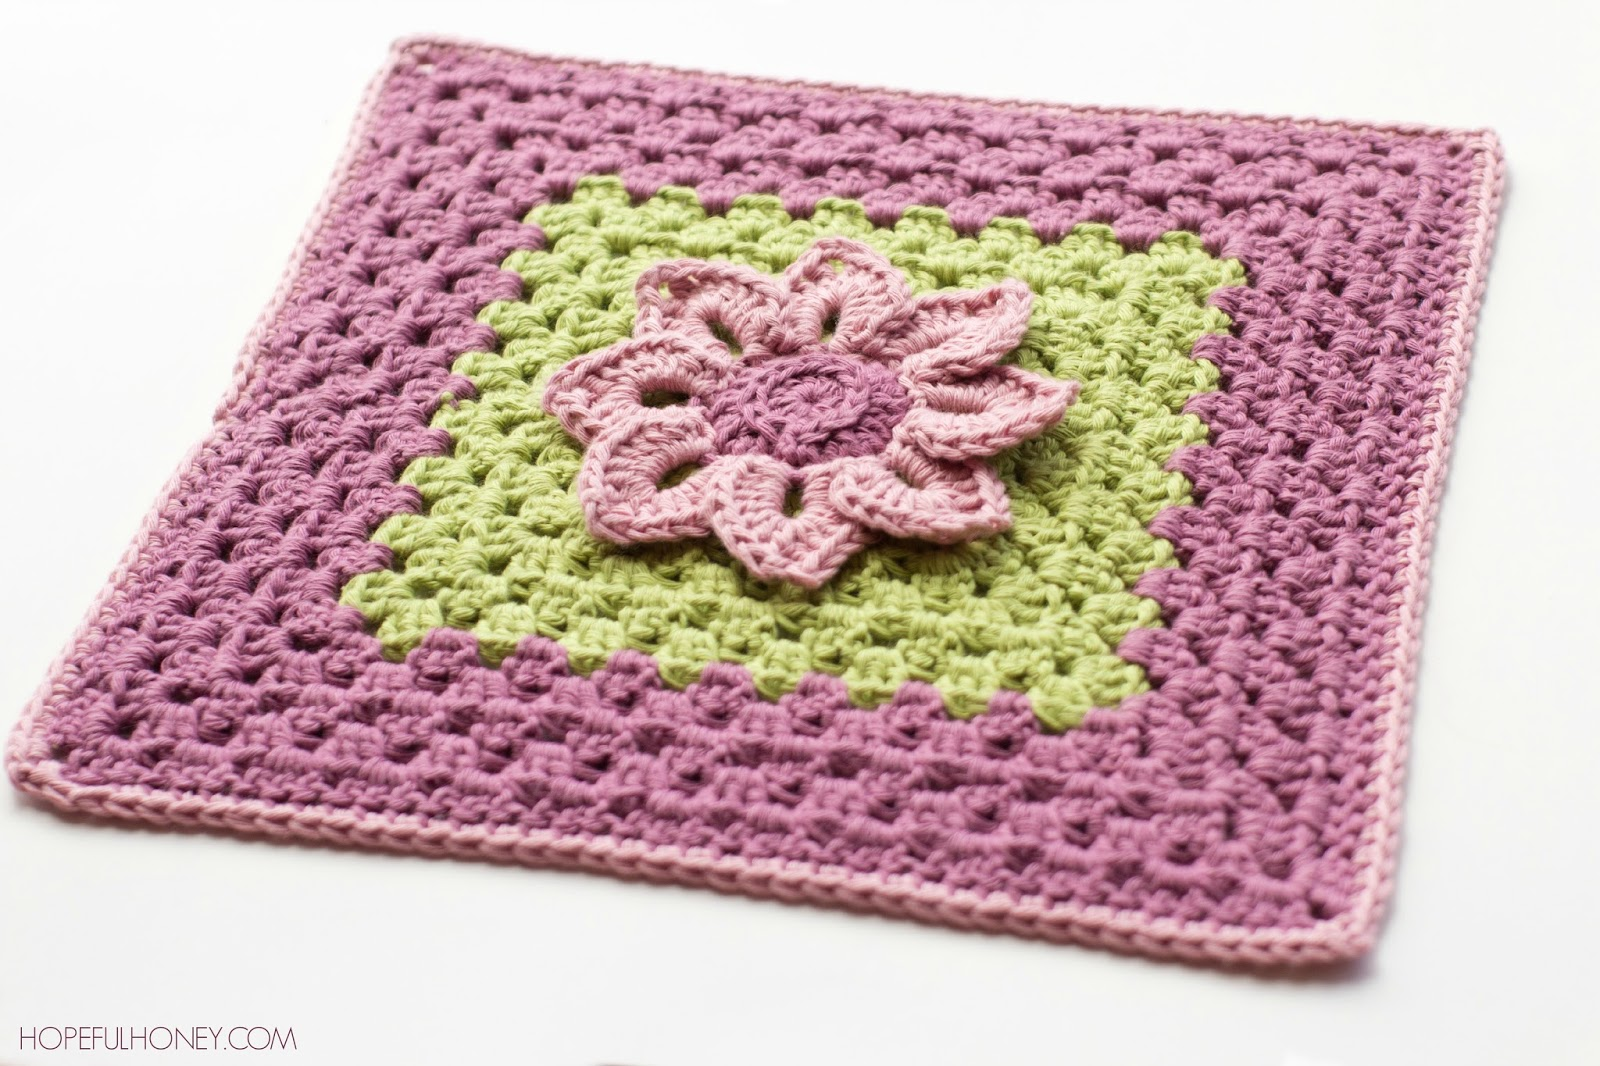 Crochet Pattern Square : Hopeful Honey Craft, Crochet, Create: Water Lily Afghan ...